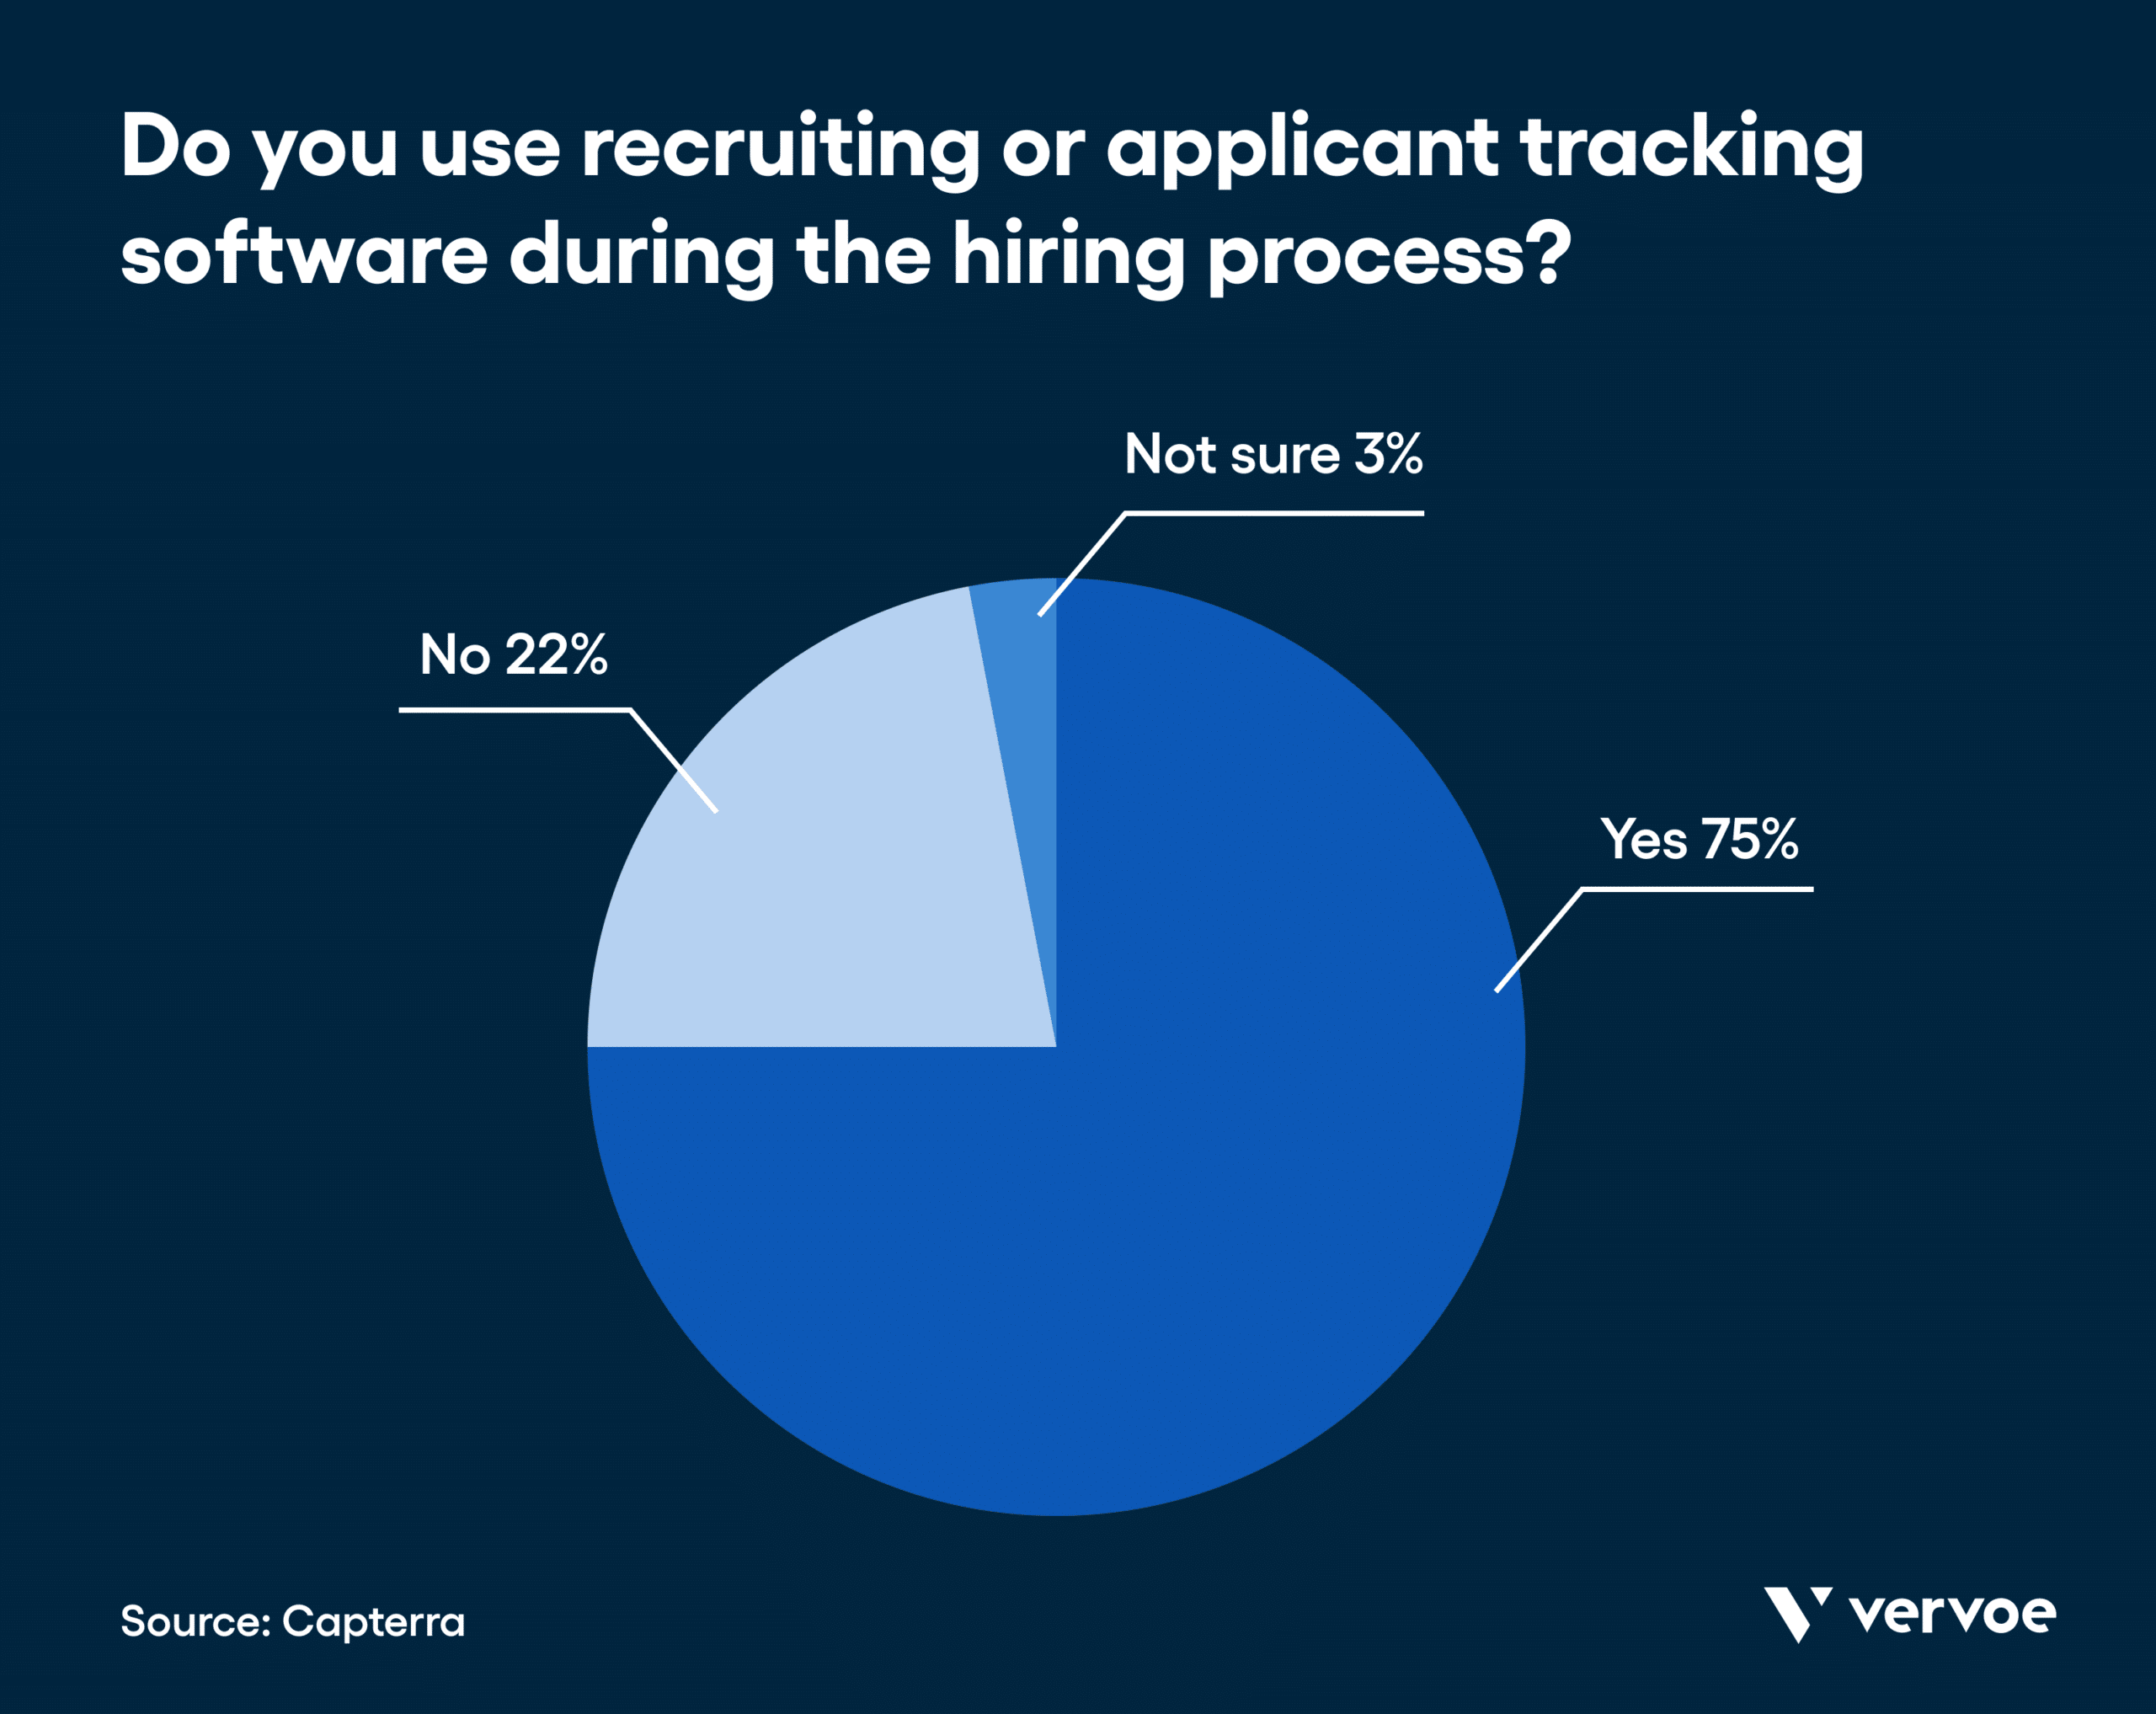 Infographic showing 75% of hiring professionals use ats